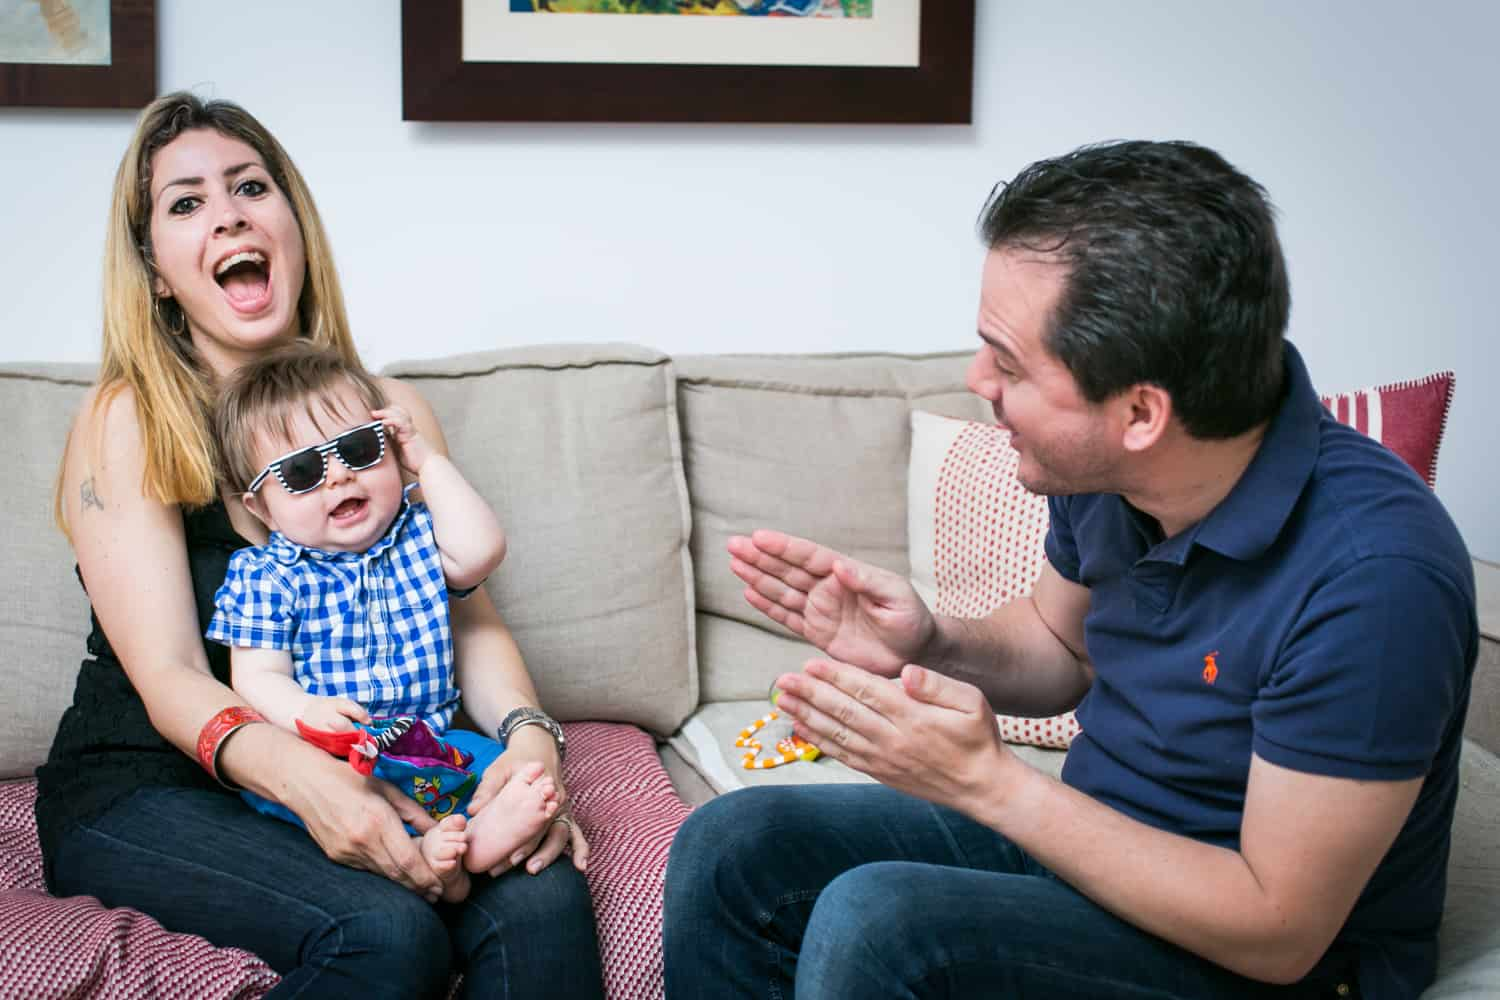 Father entertaining mother and baby wearing sunglasses